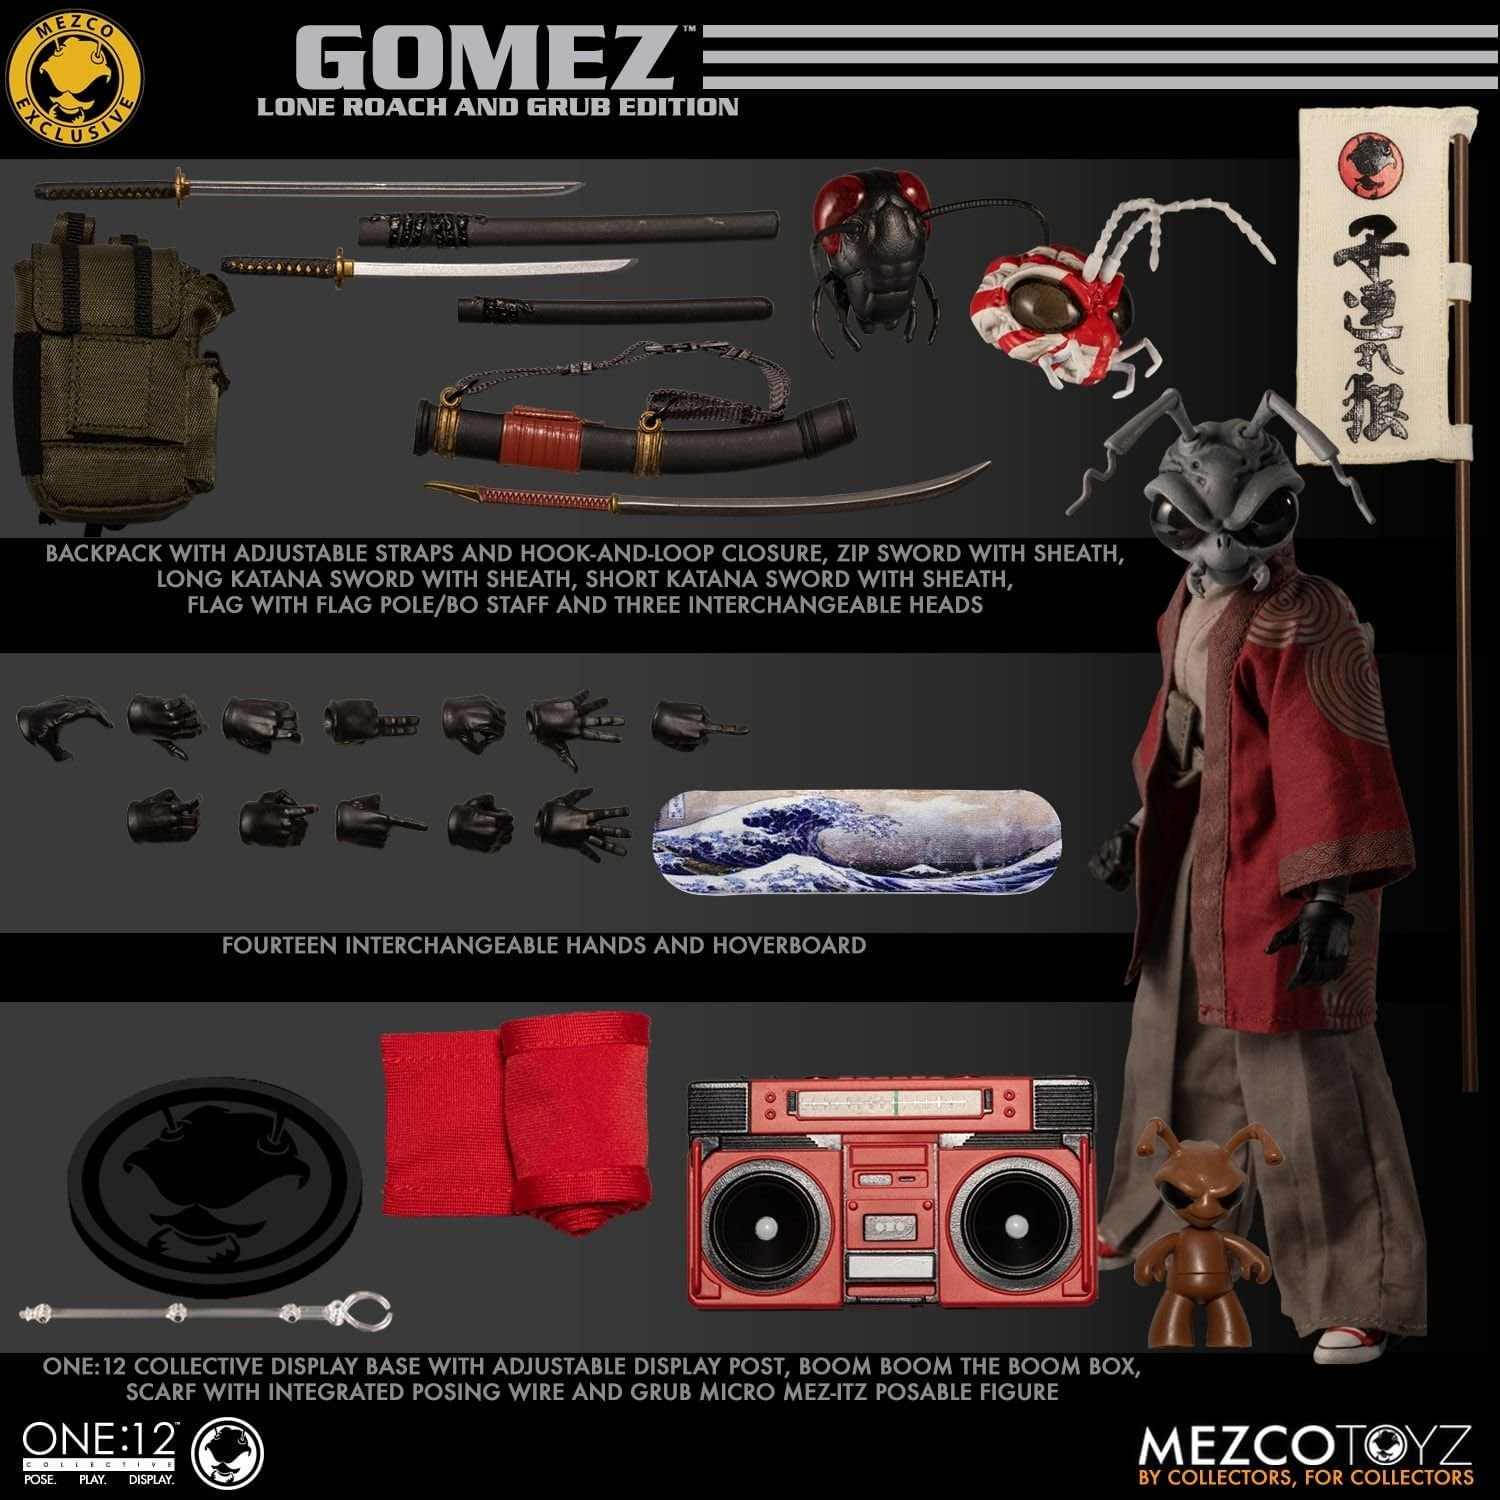 Gomez: Lone Roach and Grub Get a One:12 Figure from Mezco Toyz